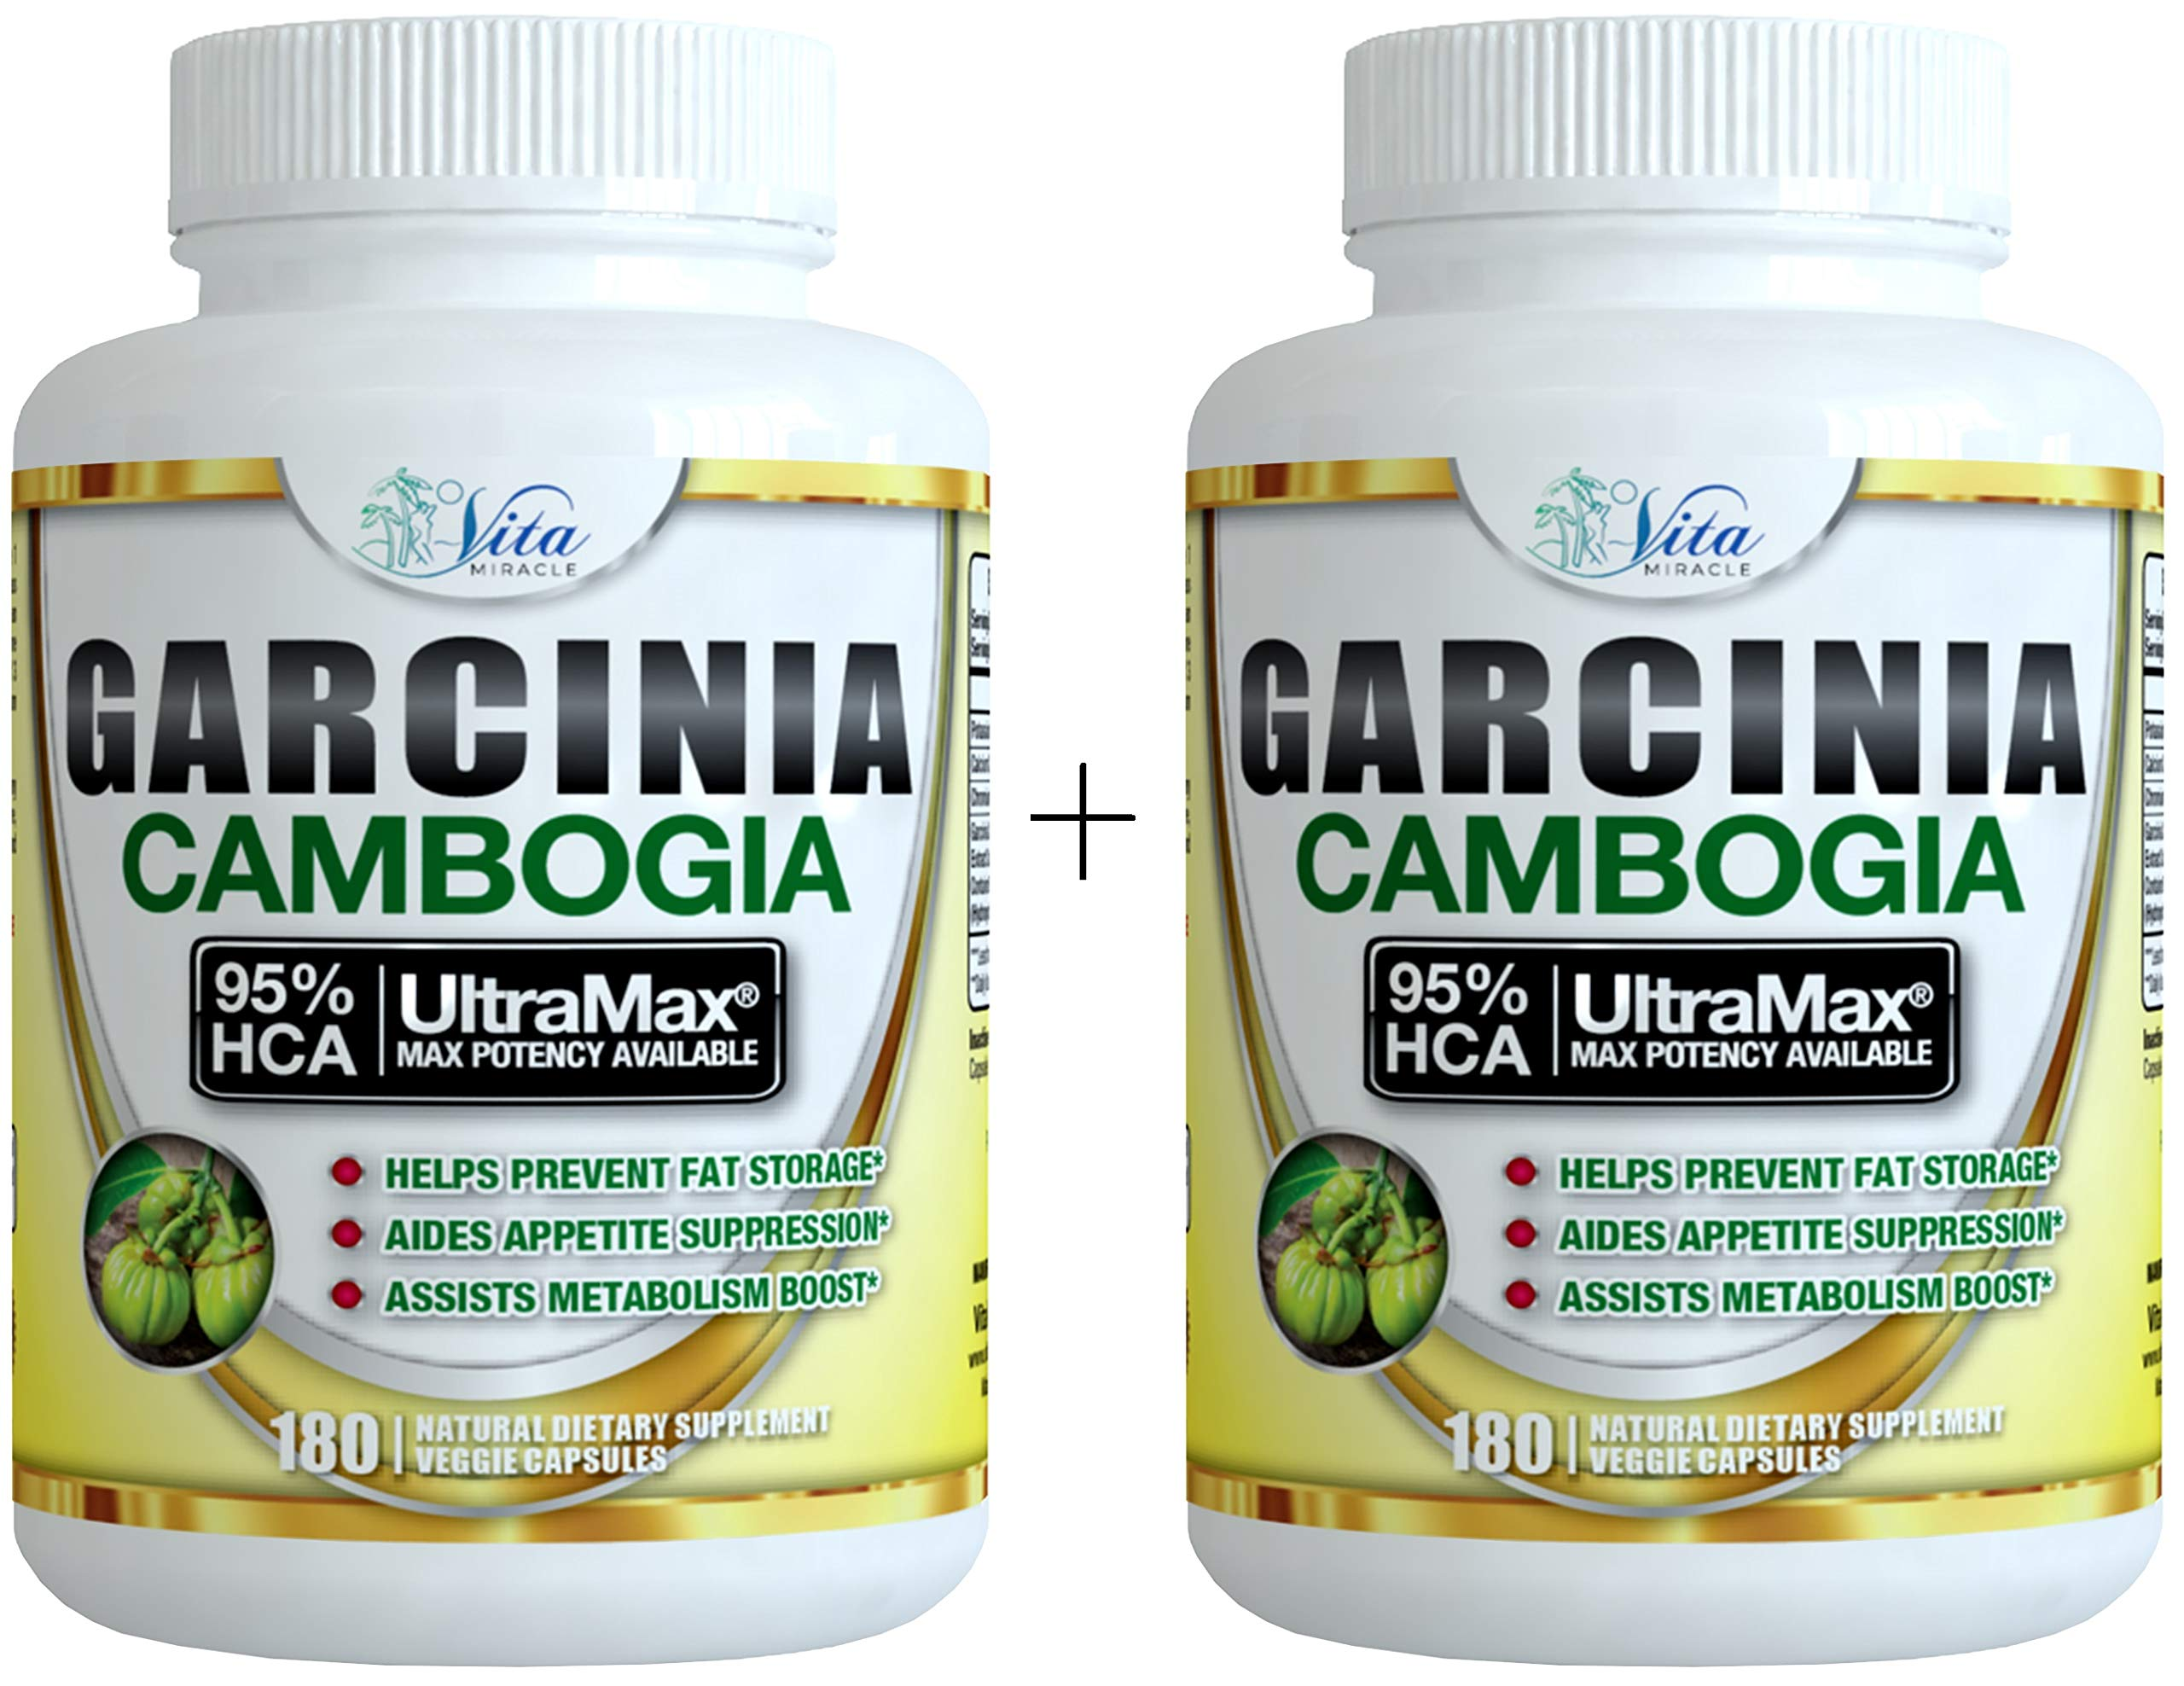 Pure Garcinia Cambogia 95% HCA - Extract Slim Maximum Strength Formula to Reduce Appetite & Lose Weight Faster Than Ever Plus Garcinia Cambogia Weight Loss E-Book (180 Count (2 Pack)) by Island's Miracle (Image #1)